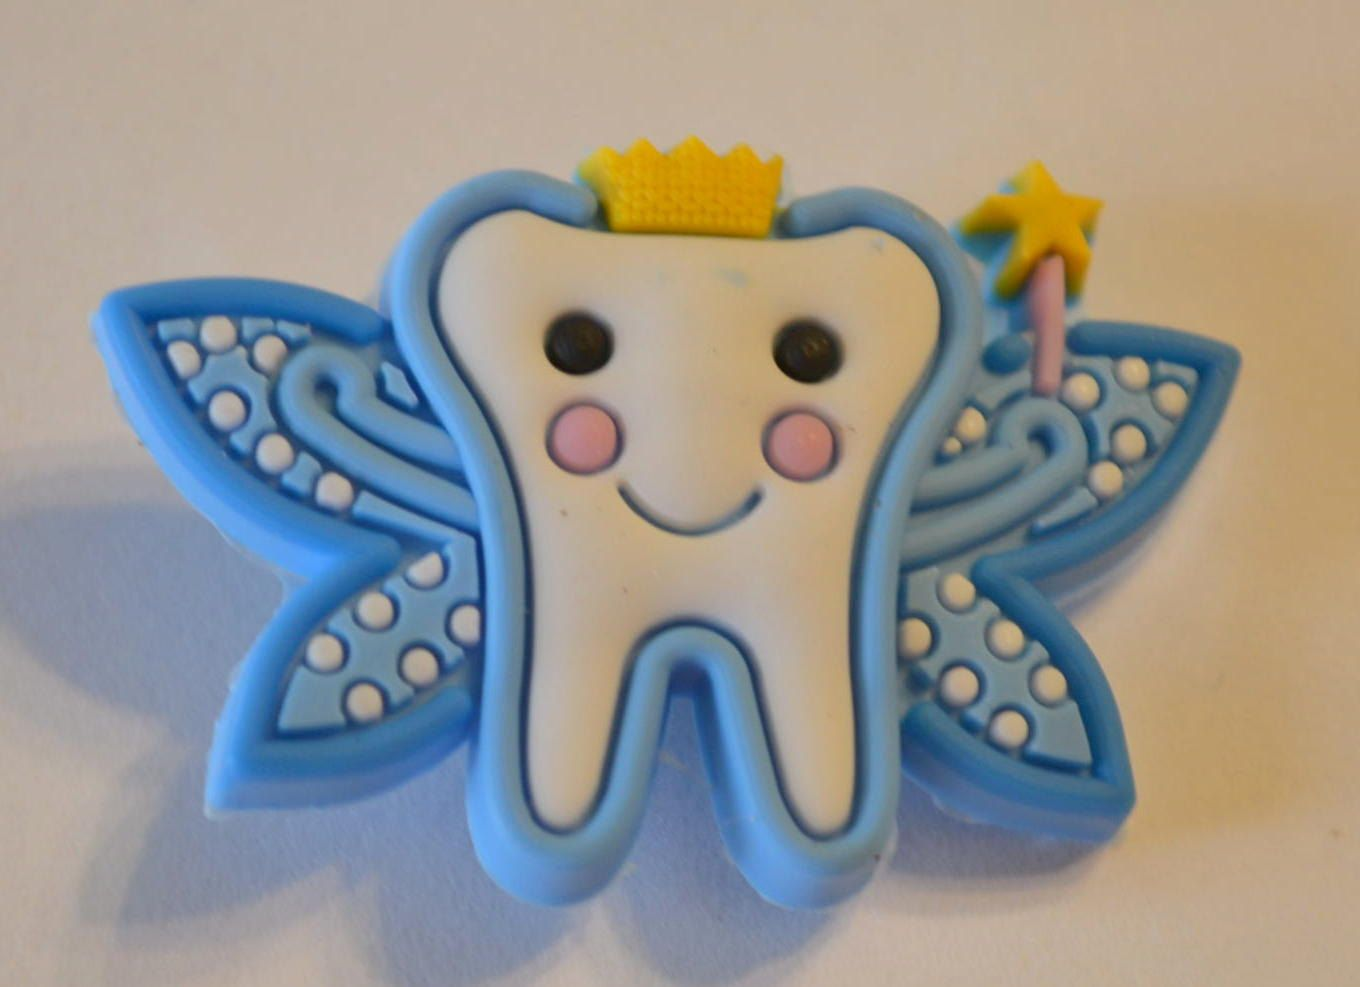 Dentist Blue Tooth Fairy Shoe Charms Decorations Crocs